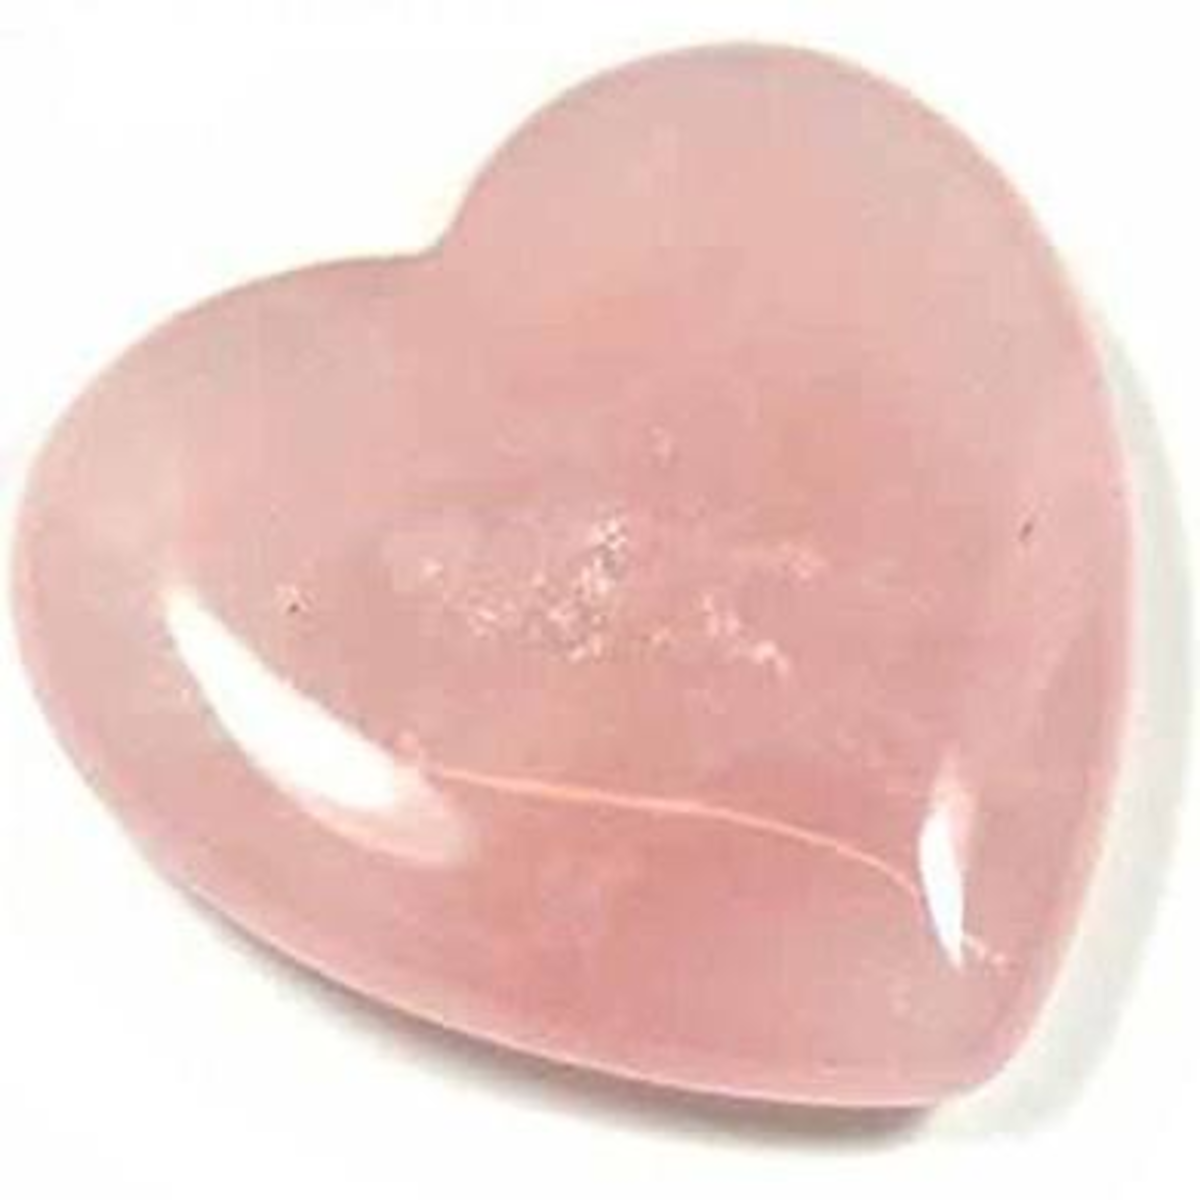 Rose quartz often is cut into a heart shape as it brings love into our lives, or keeps our hearts open to healing in hard times.